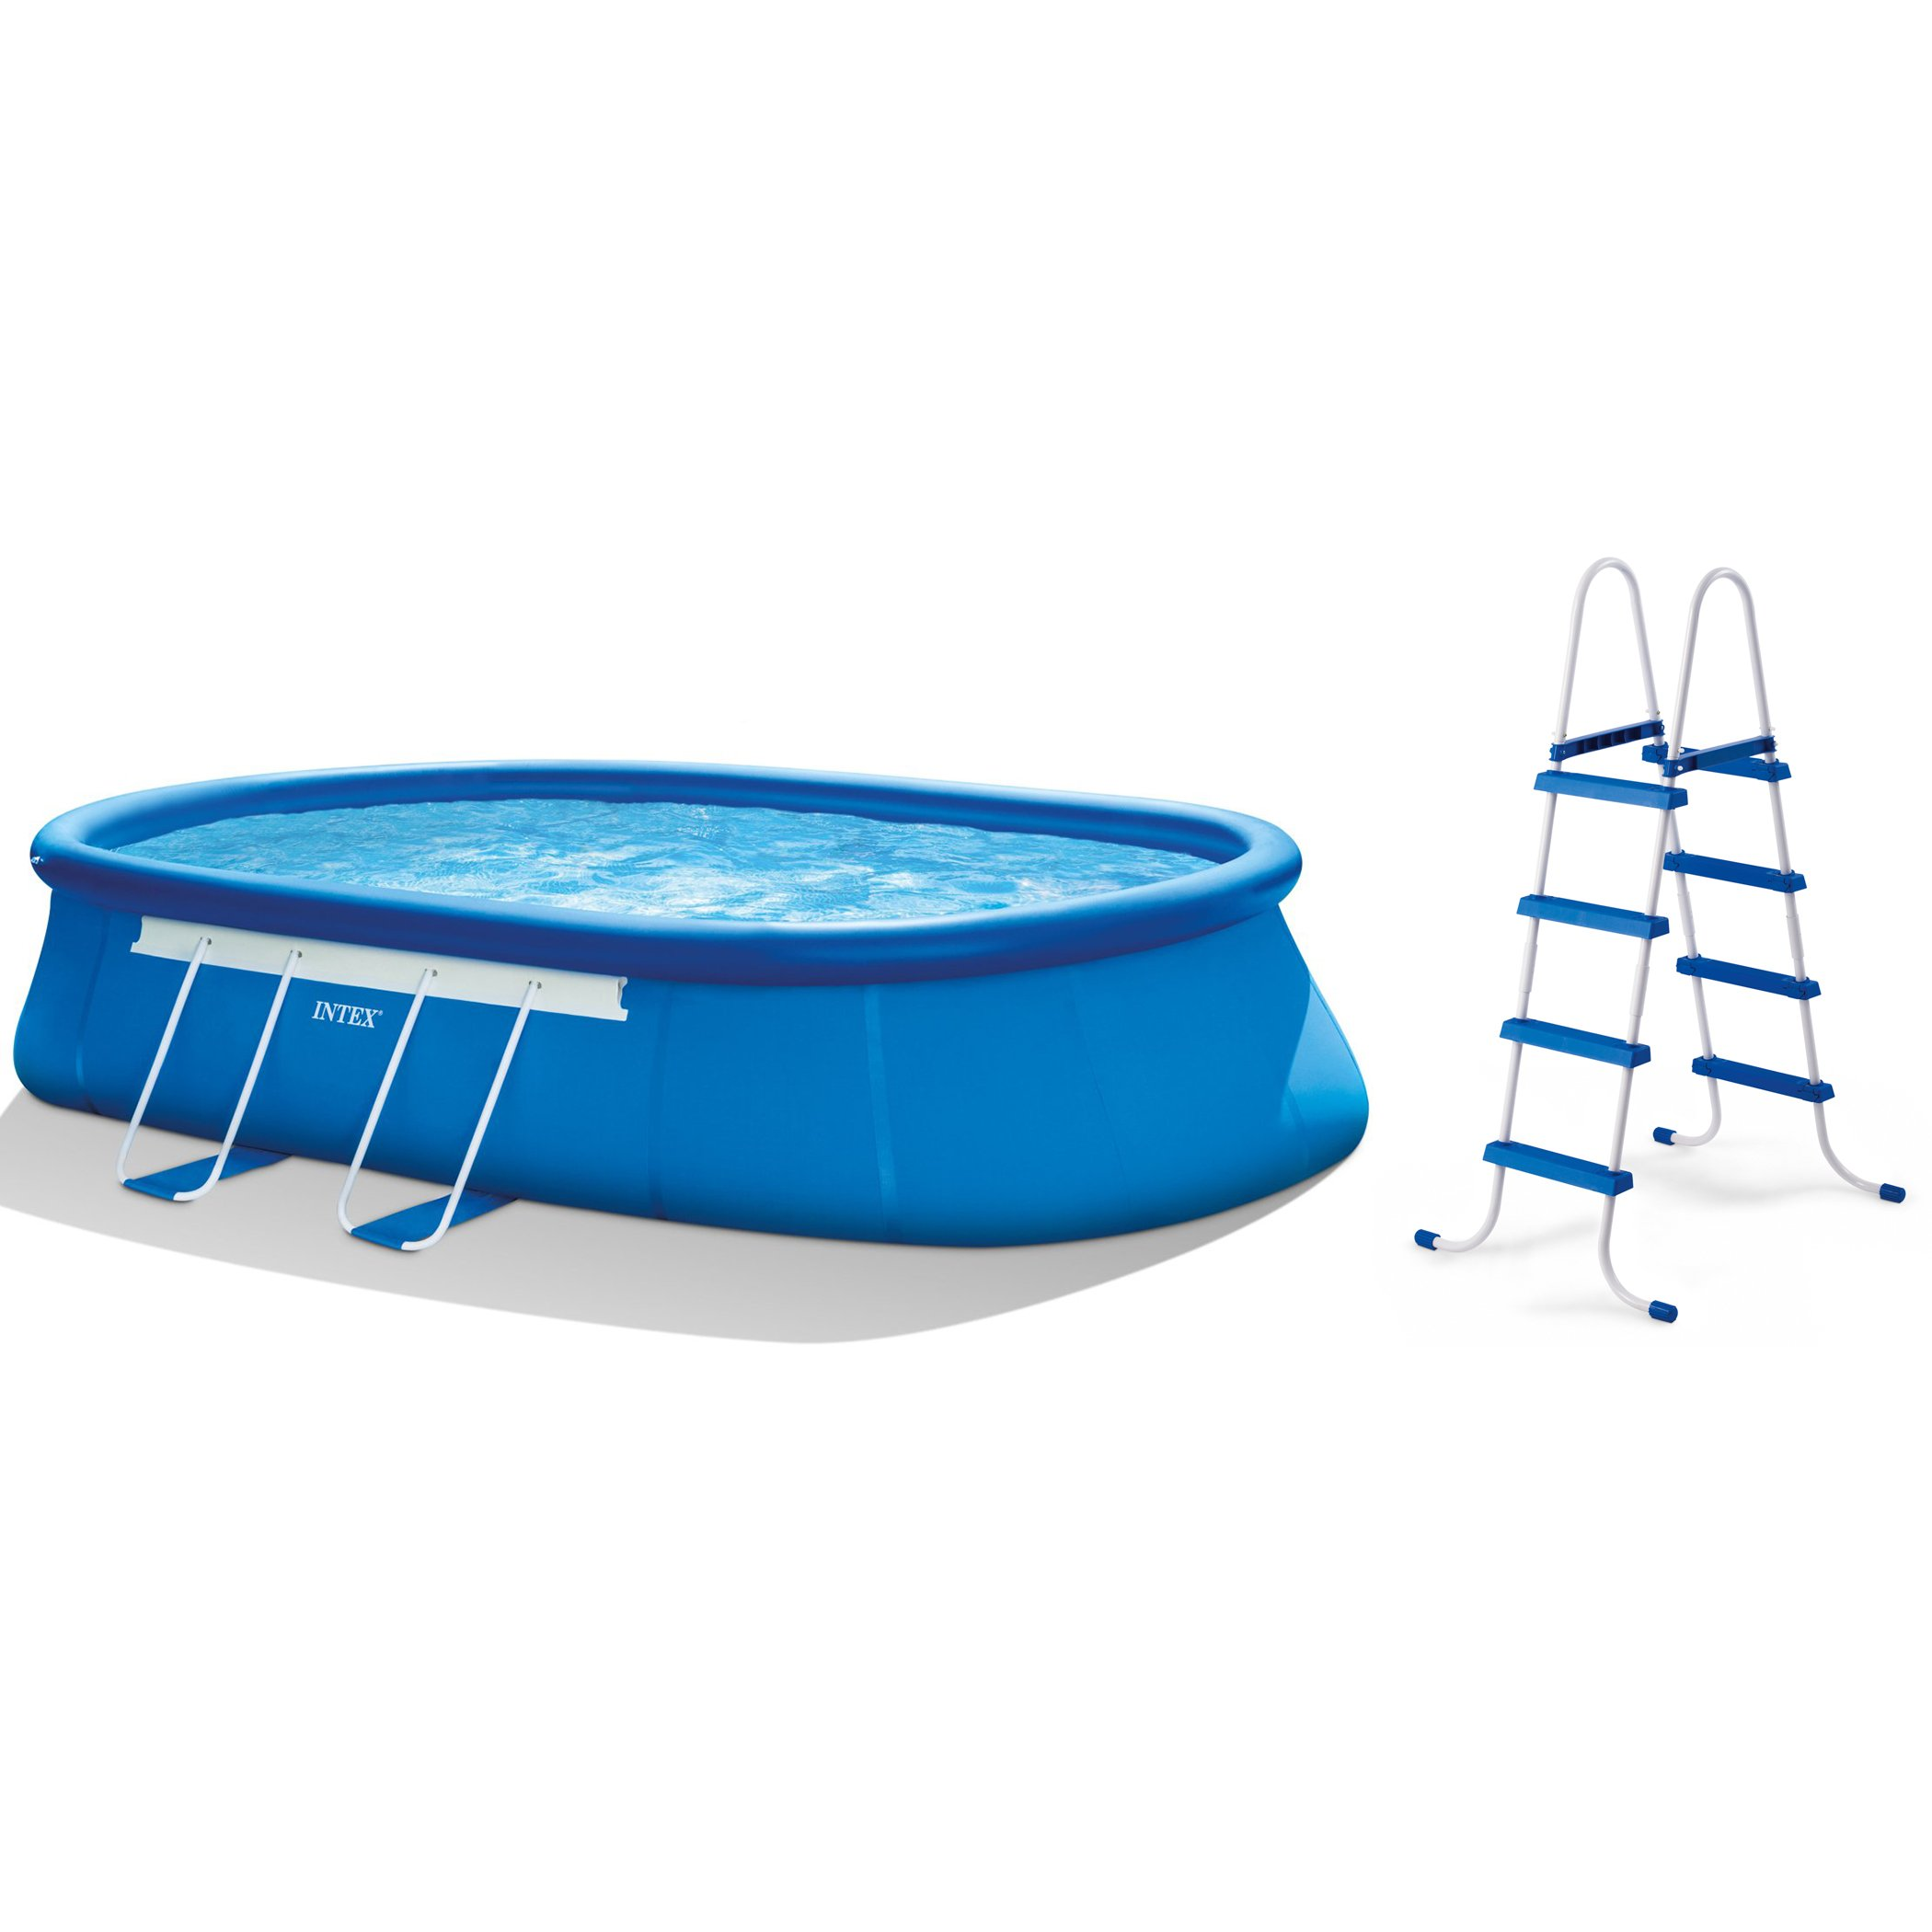 Intex Oval Frame Pool Set, 20-Feet-by-12-Feet-by-48-Inch (Discontinued by Manufacturer)